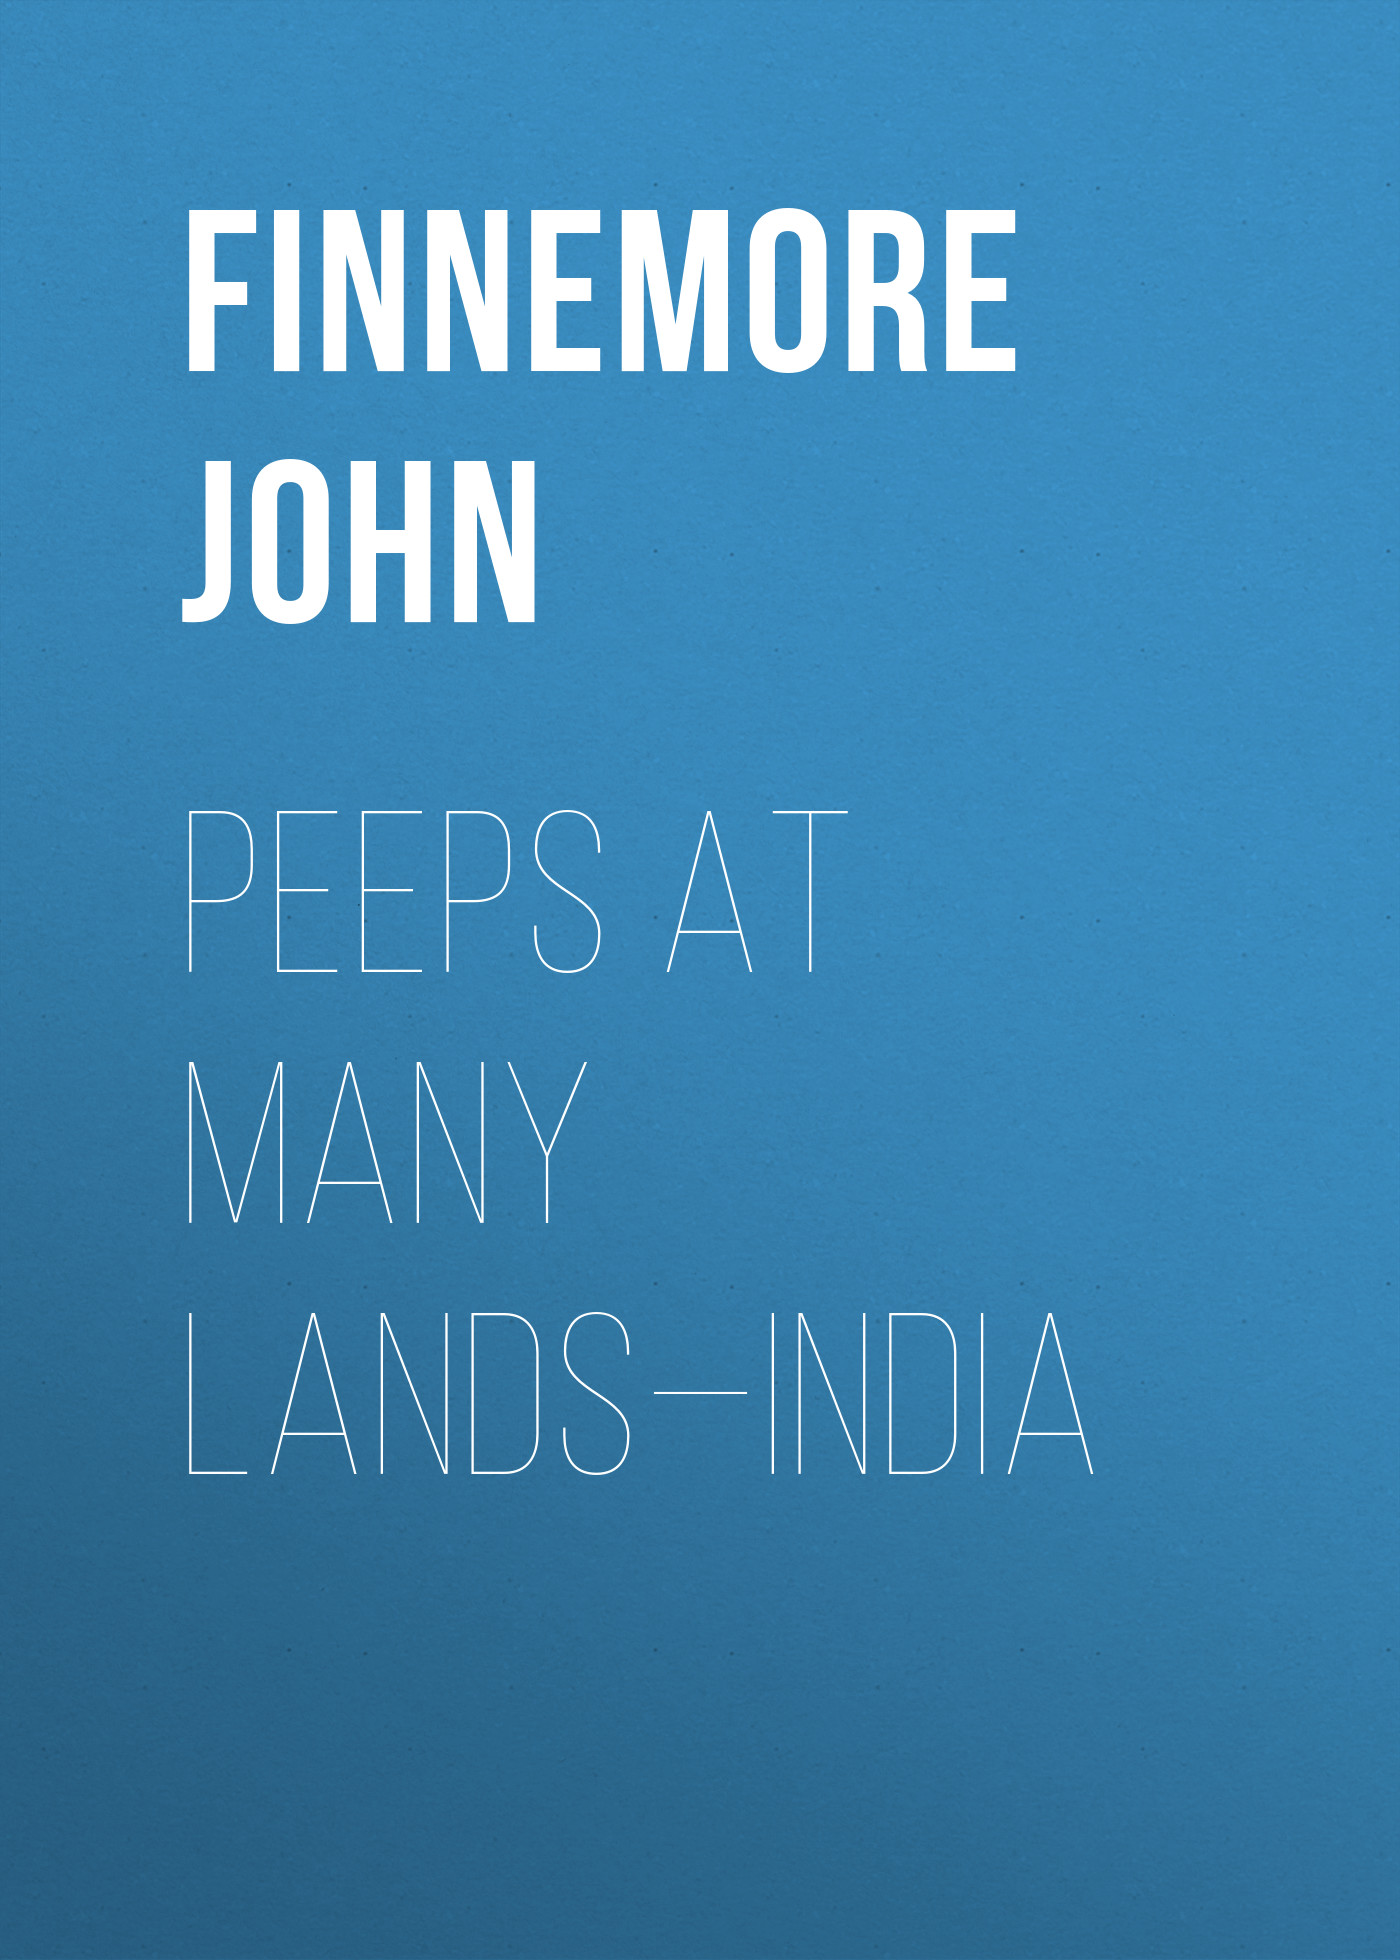 цена Finnemore John Peeps at Many Lands—India онлайн в 2017 году